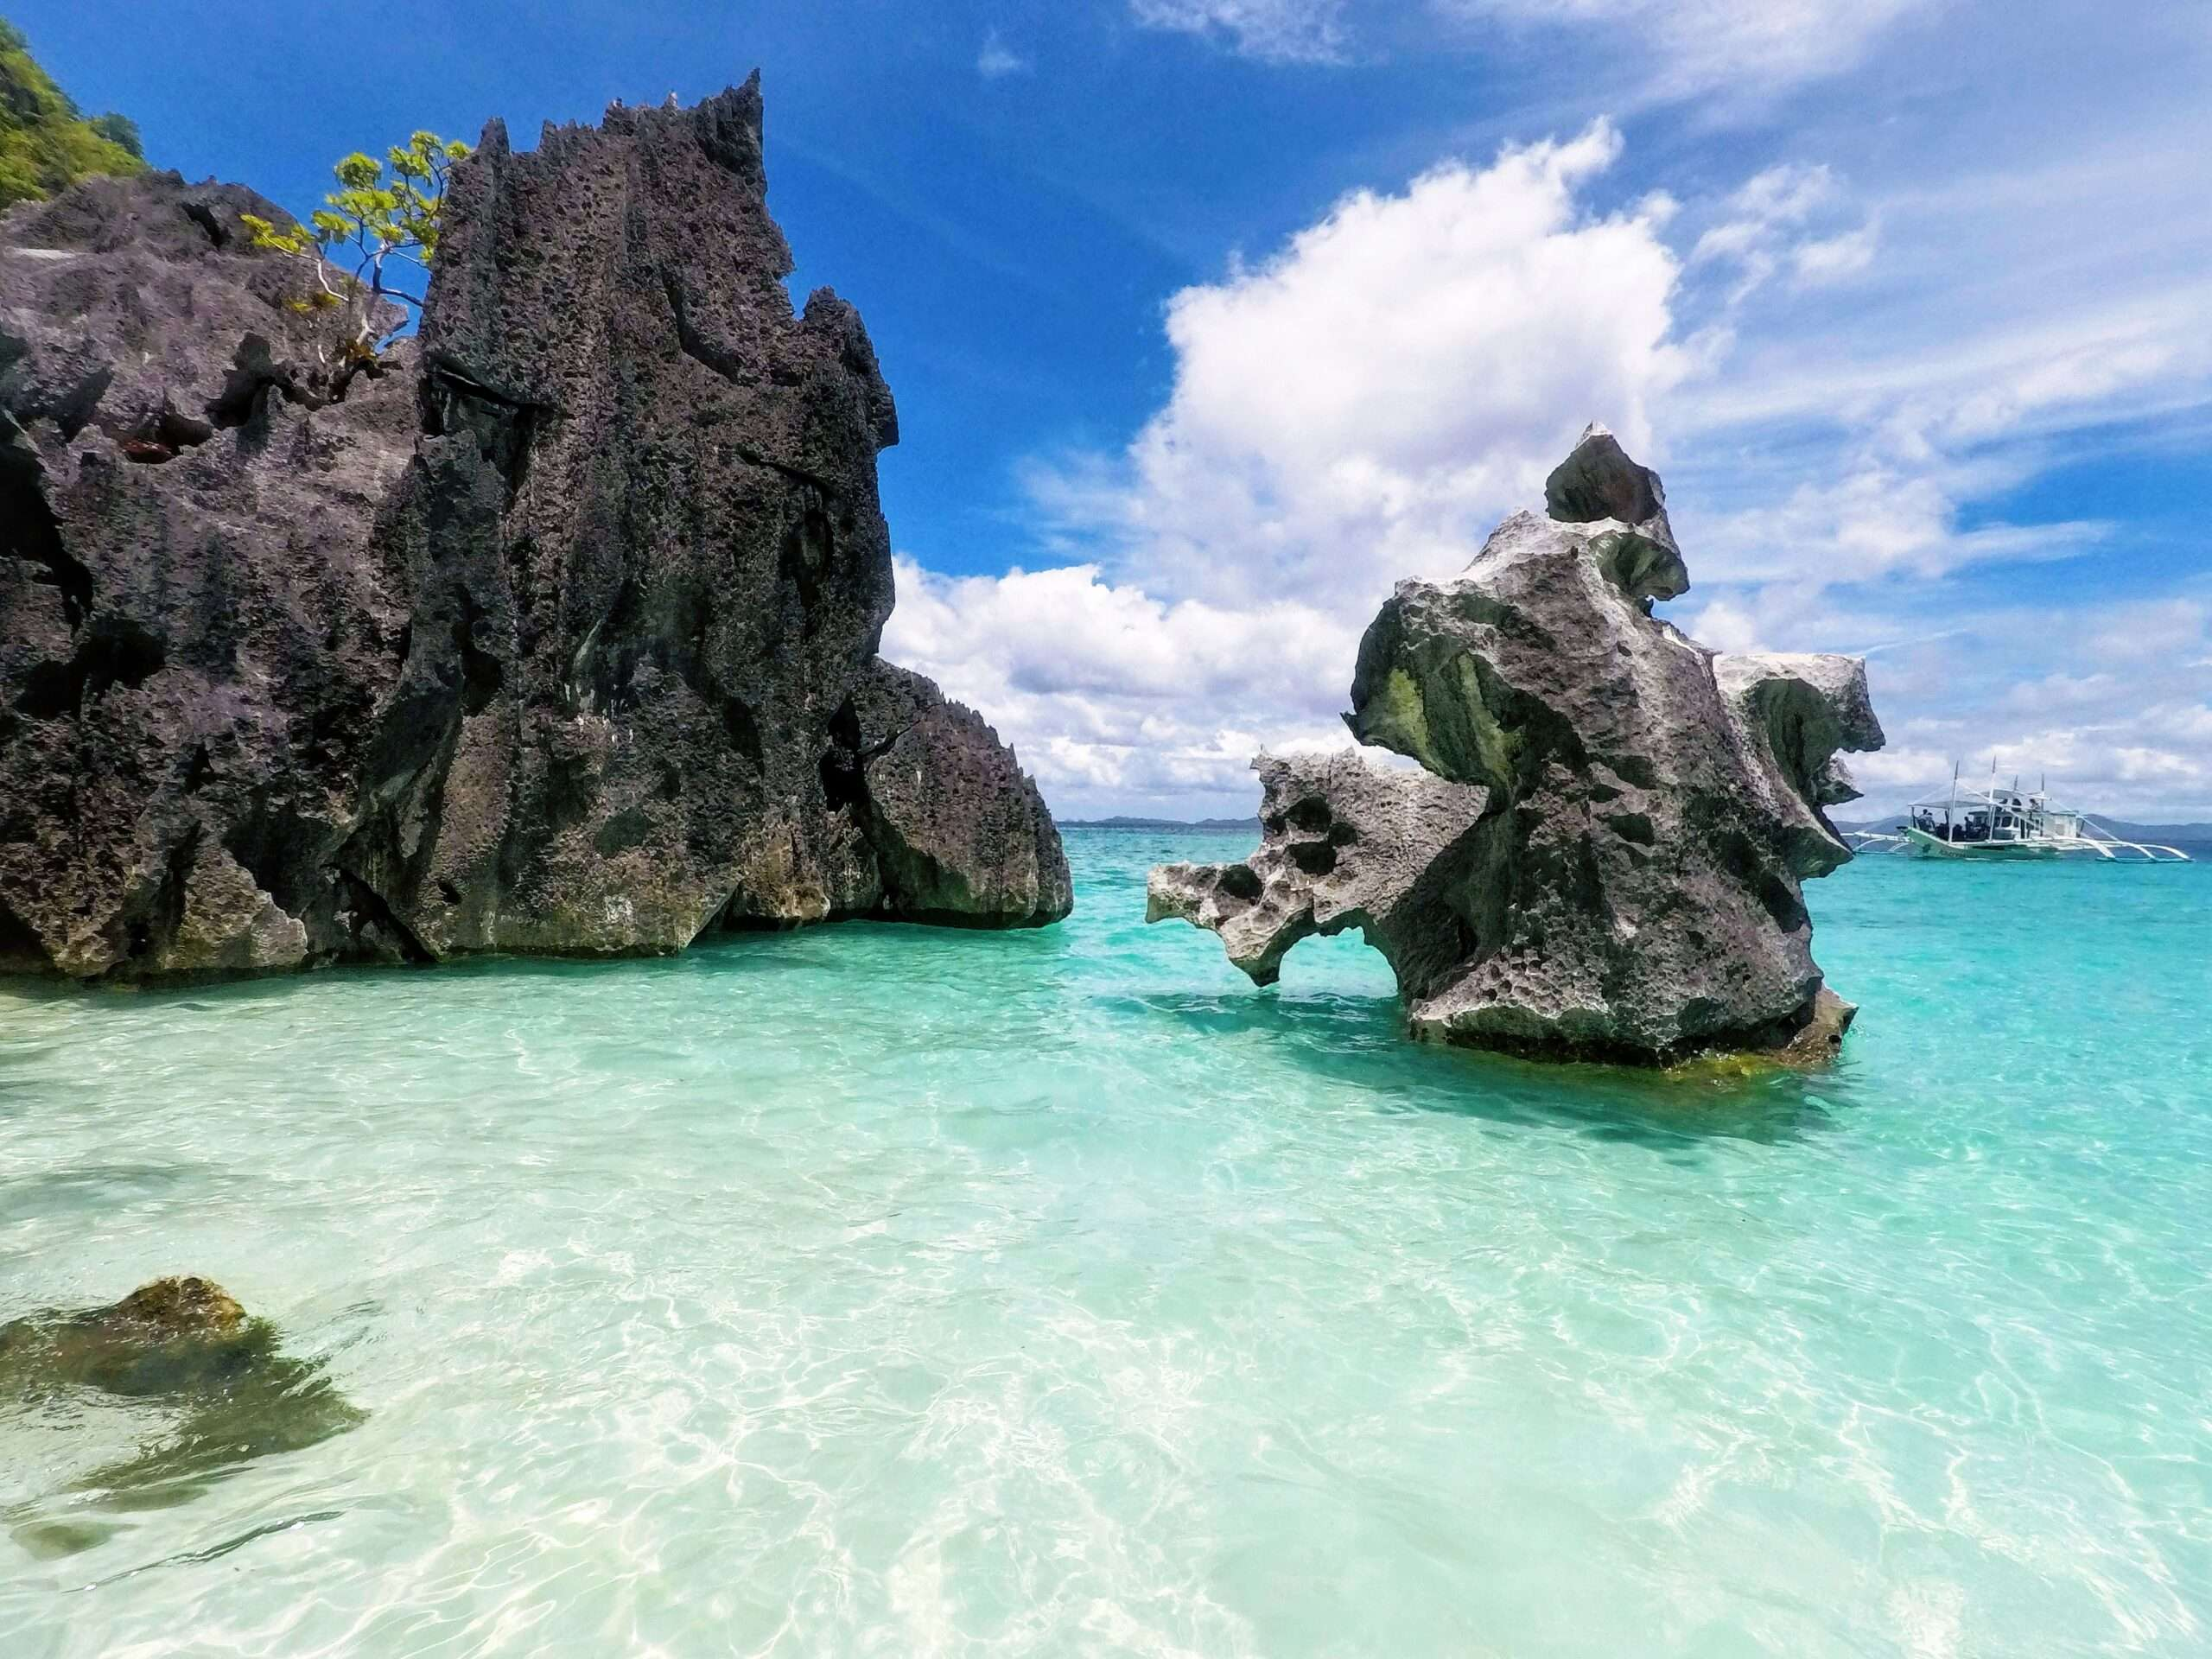 bright blue sky and clear turquoise water with 2 big rock formations in Coron, Philippines